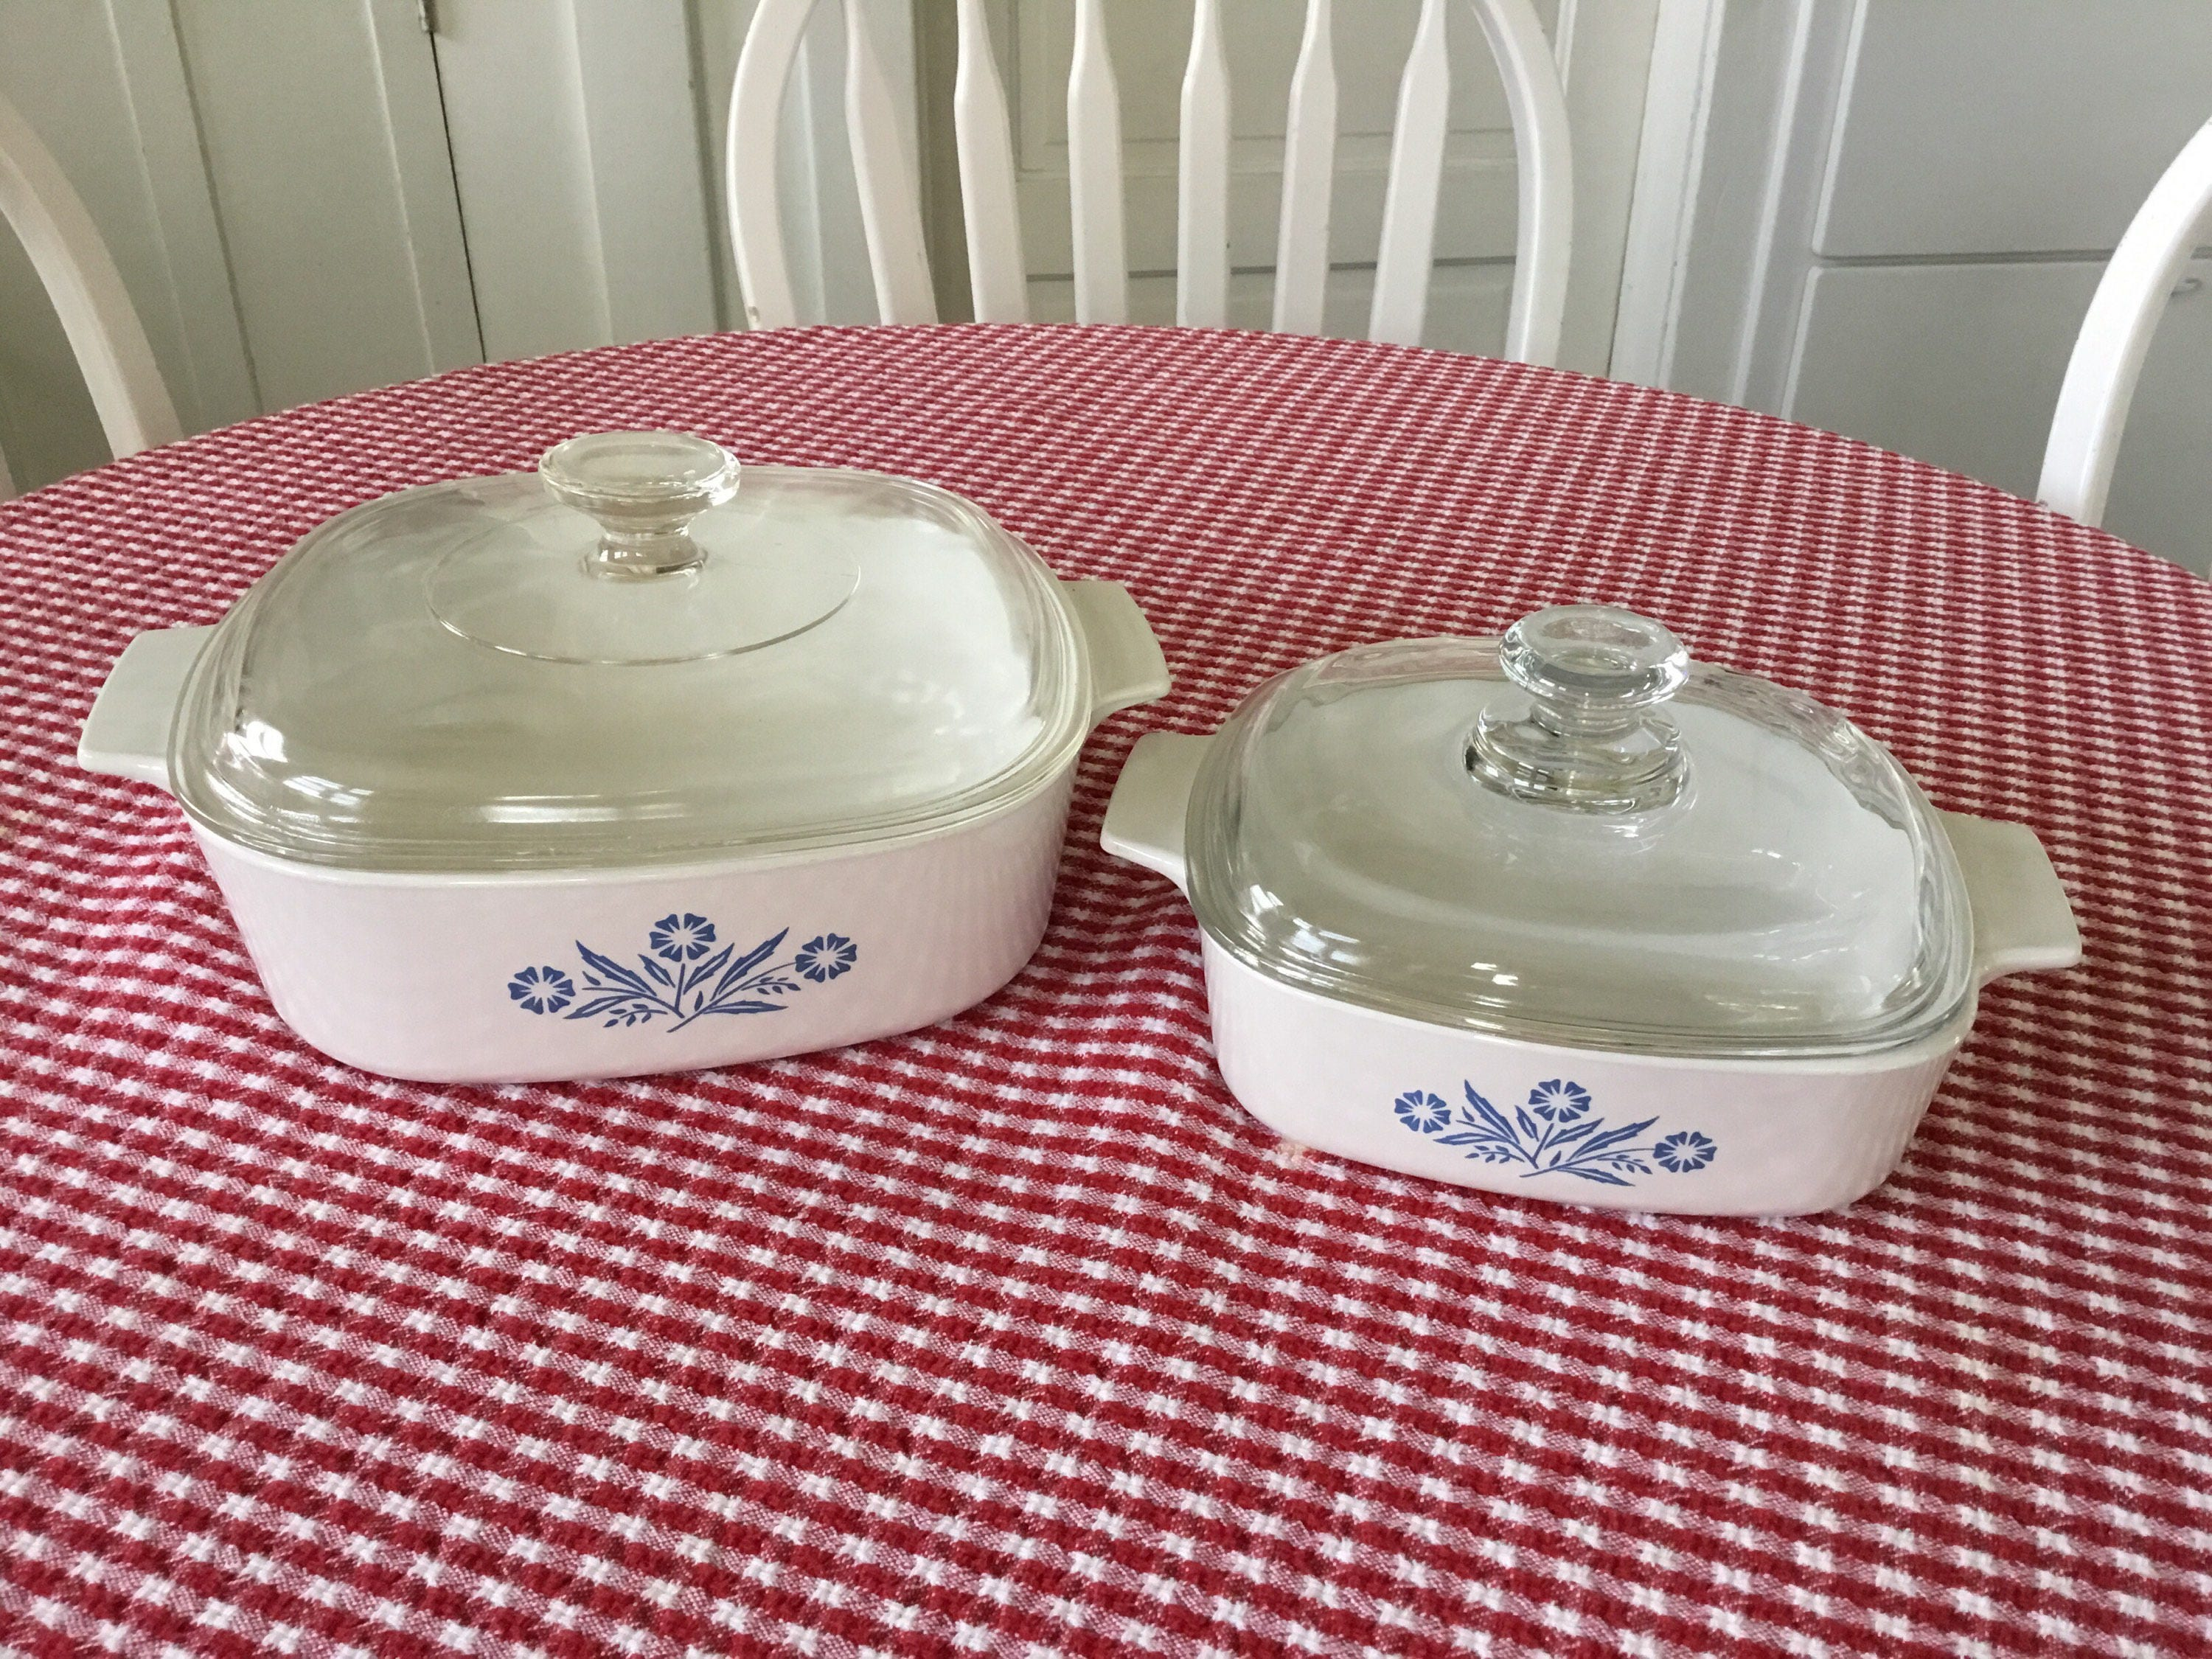 Vintage Corning Ware Blue Cornflower Baking Dishes Square 1 and 2